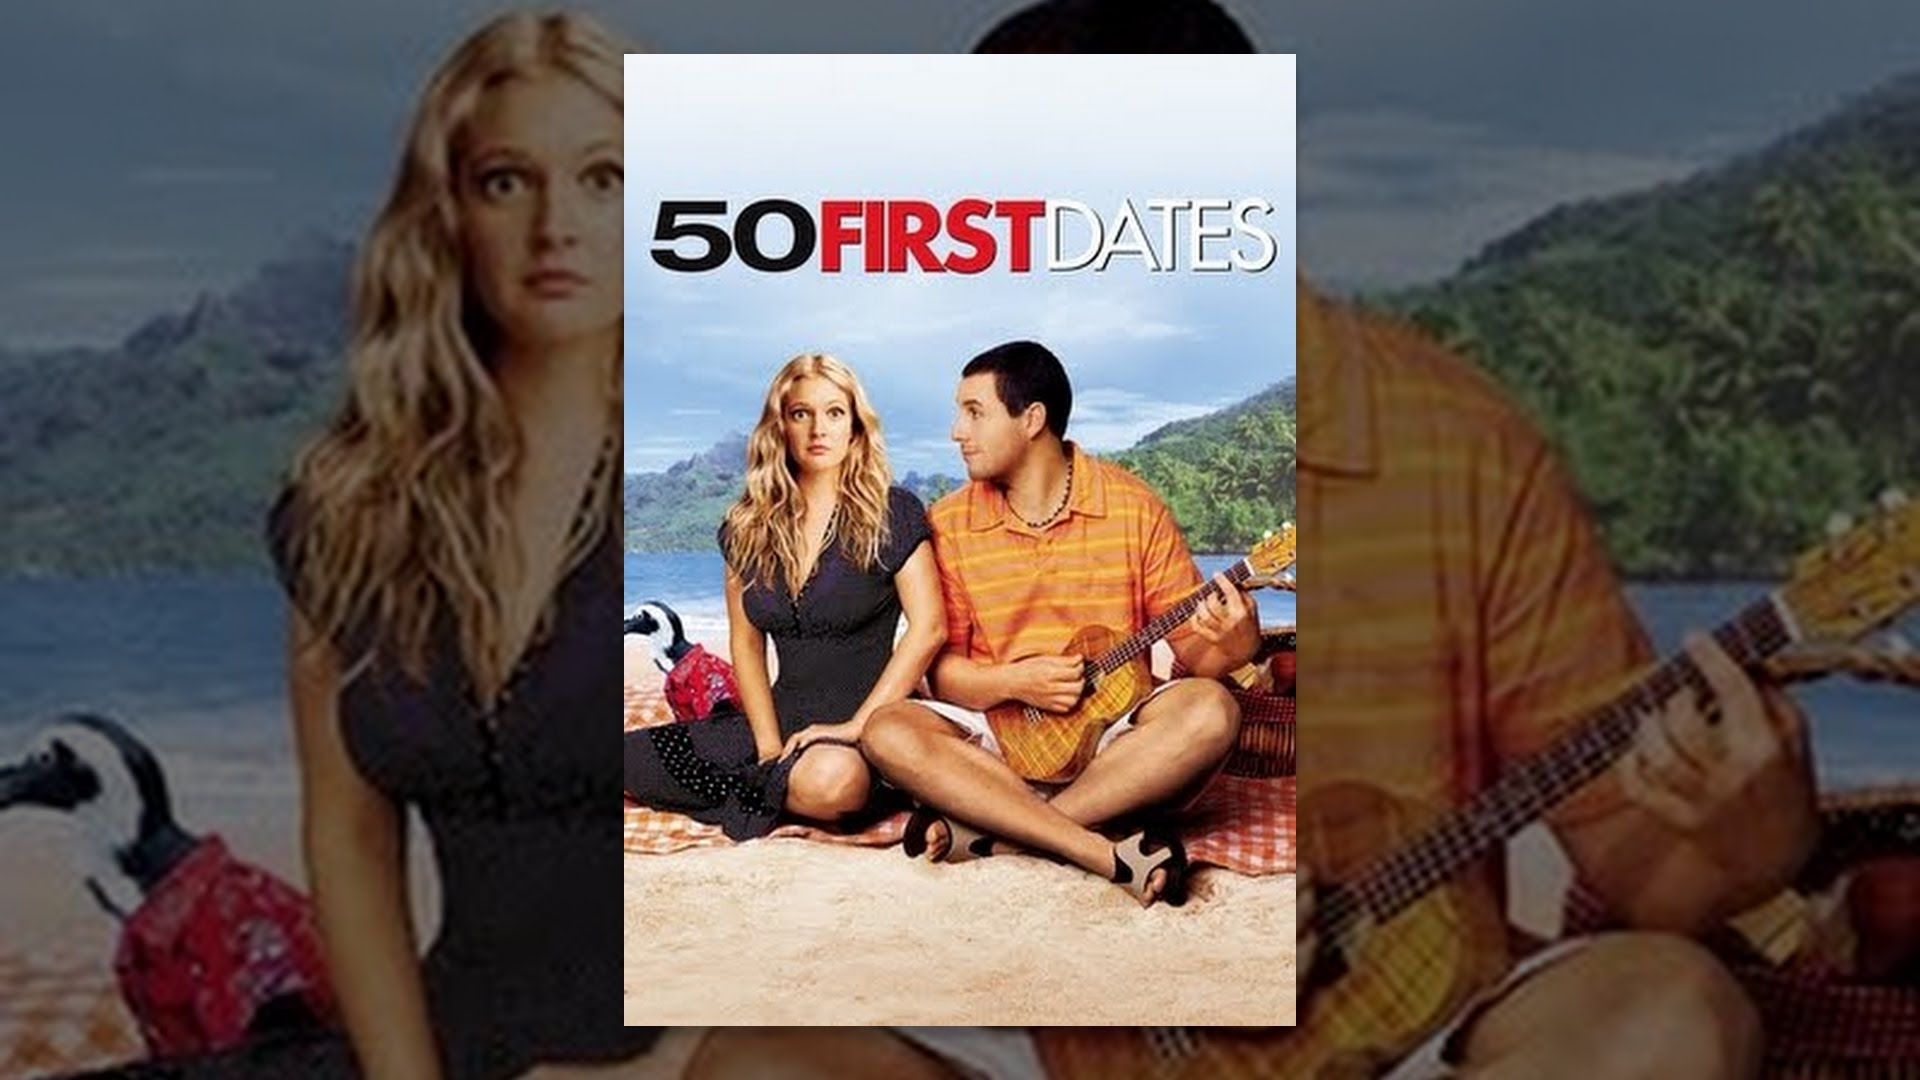 50 first dates in Perth